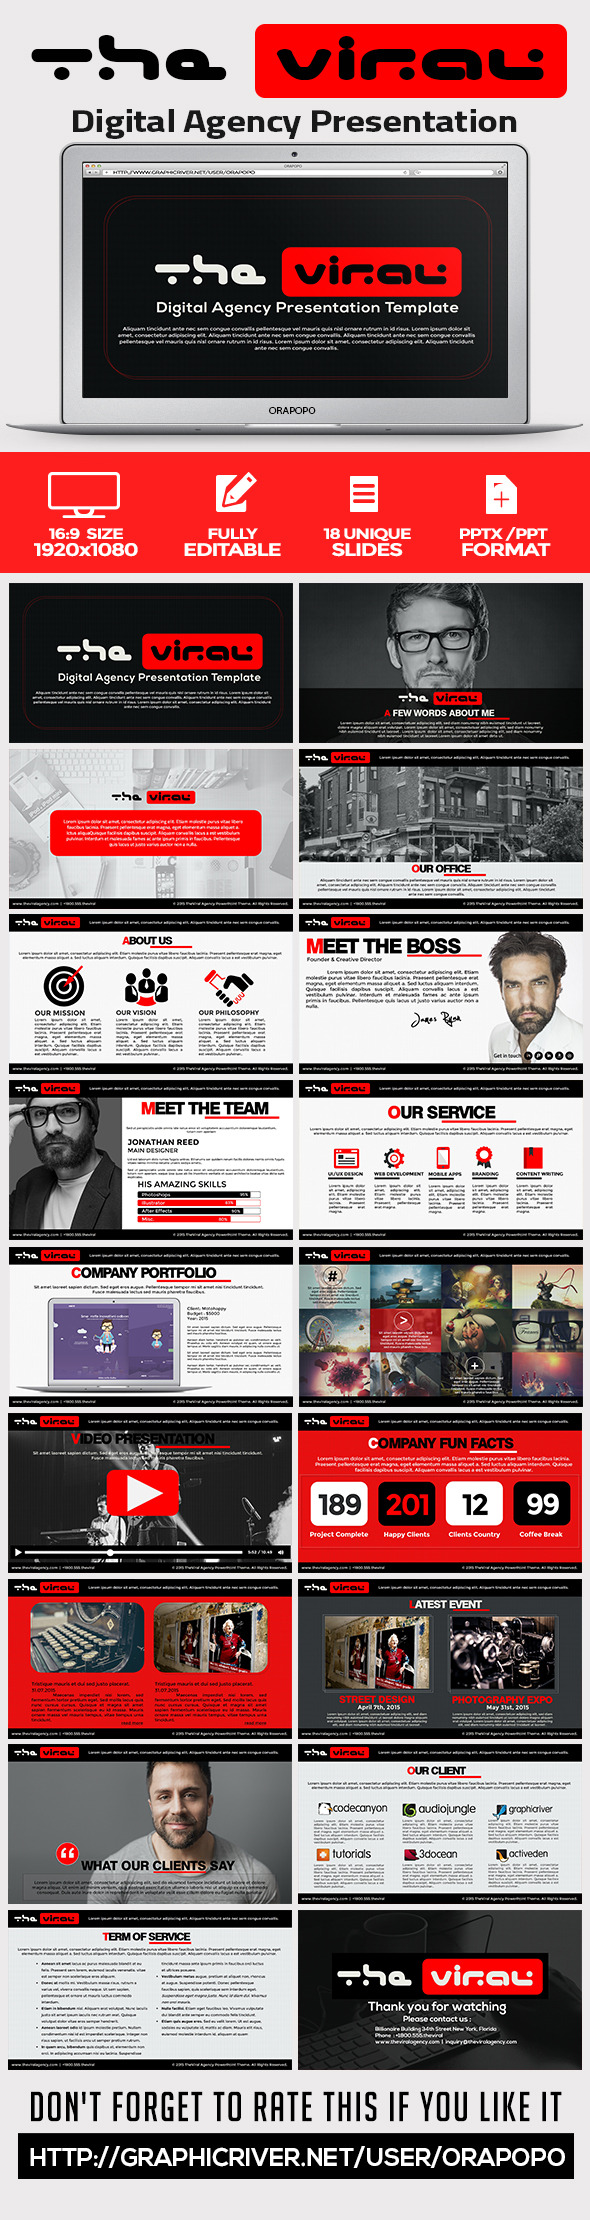 GraphicRiver he Viral Digital Agency Presentation Template 11452475